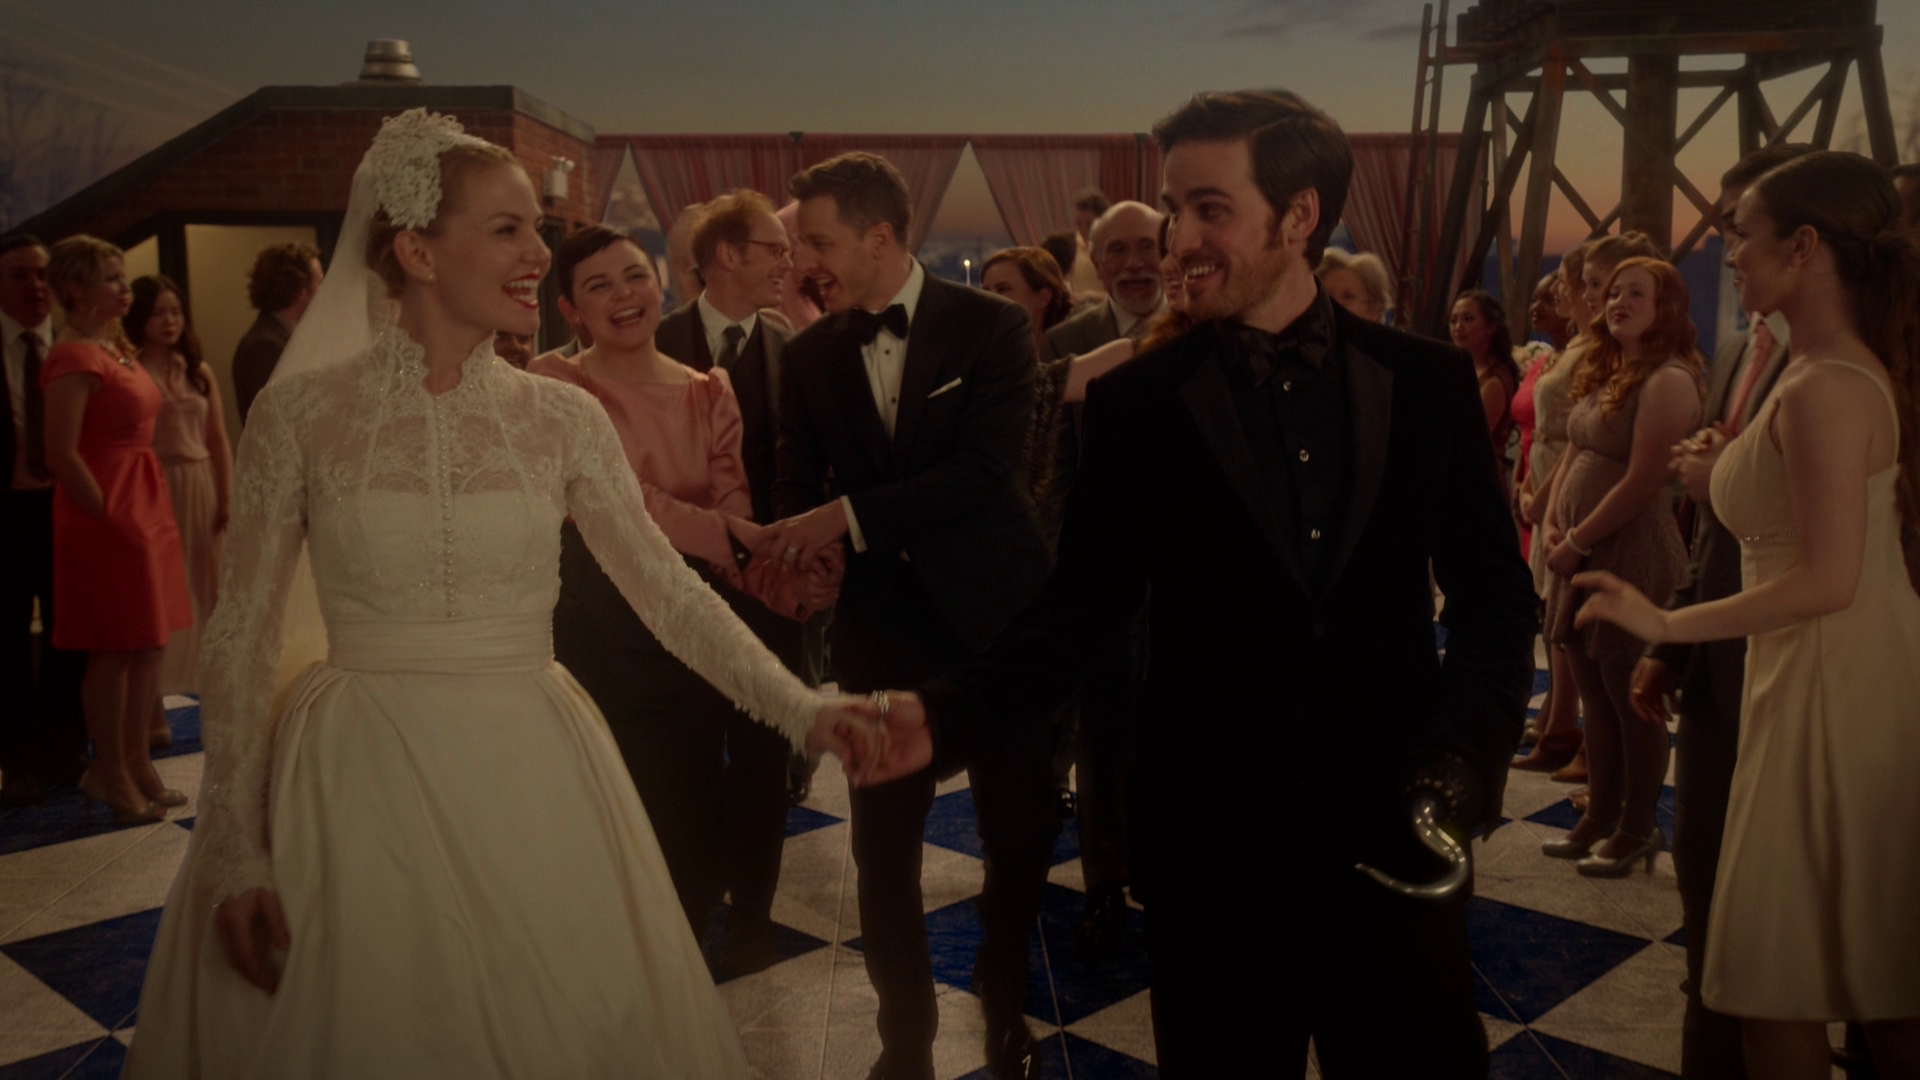 Photo of Best of 'Once Upon a Time' season 6: Weddings, engagements, angst, oh my!